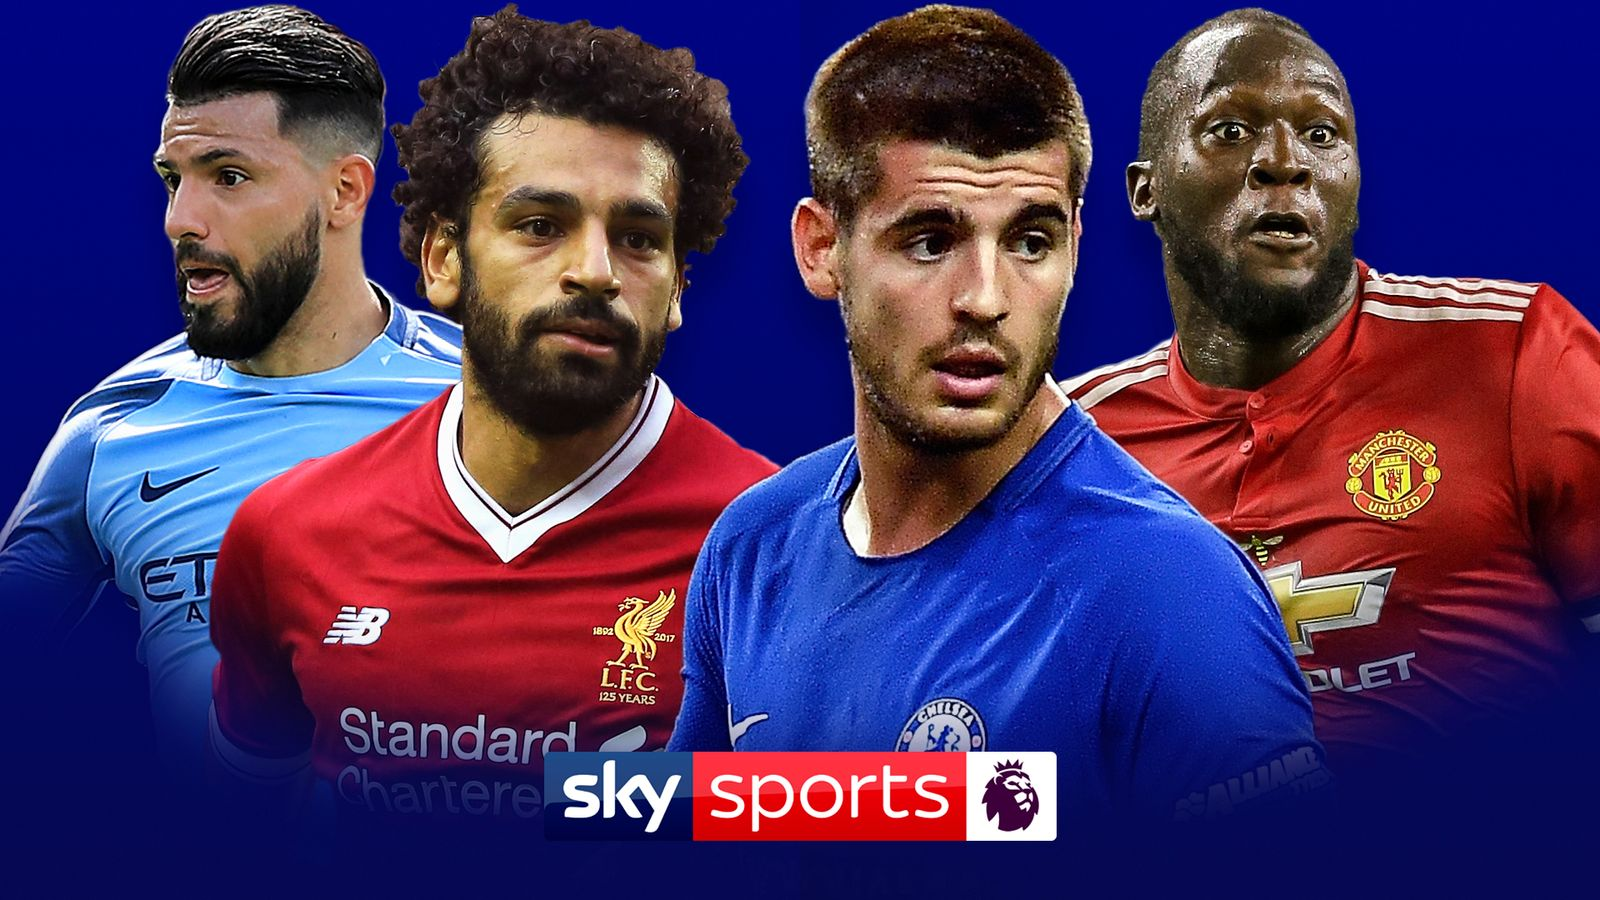 Watch 126 live games on Sky Sports Premier League next season